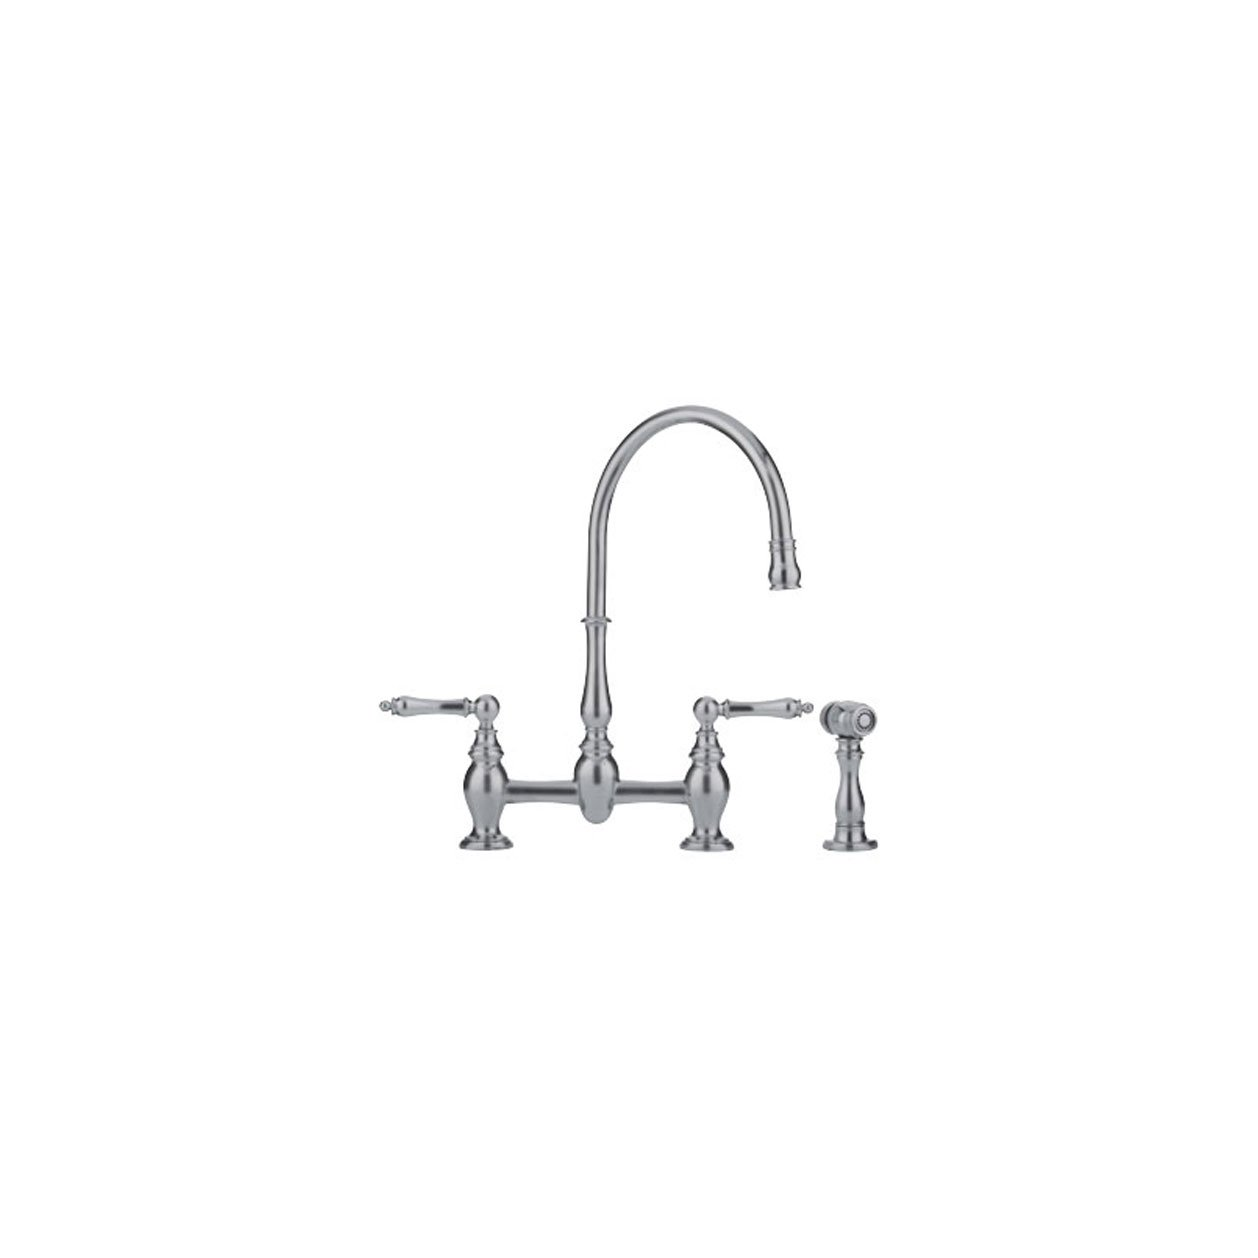 Franke FF6080A Farm House Two Handle Side-Spray Kitchen Faucet, Satin Nickel